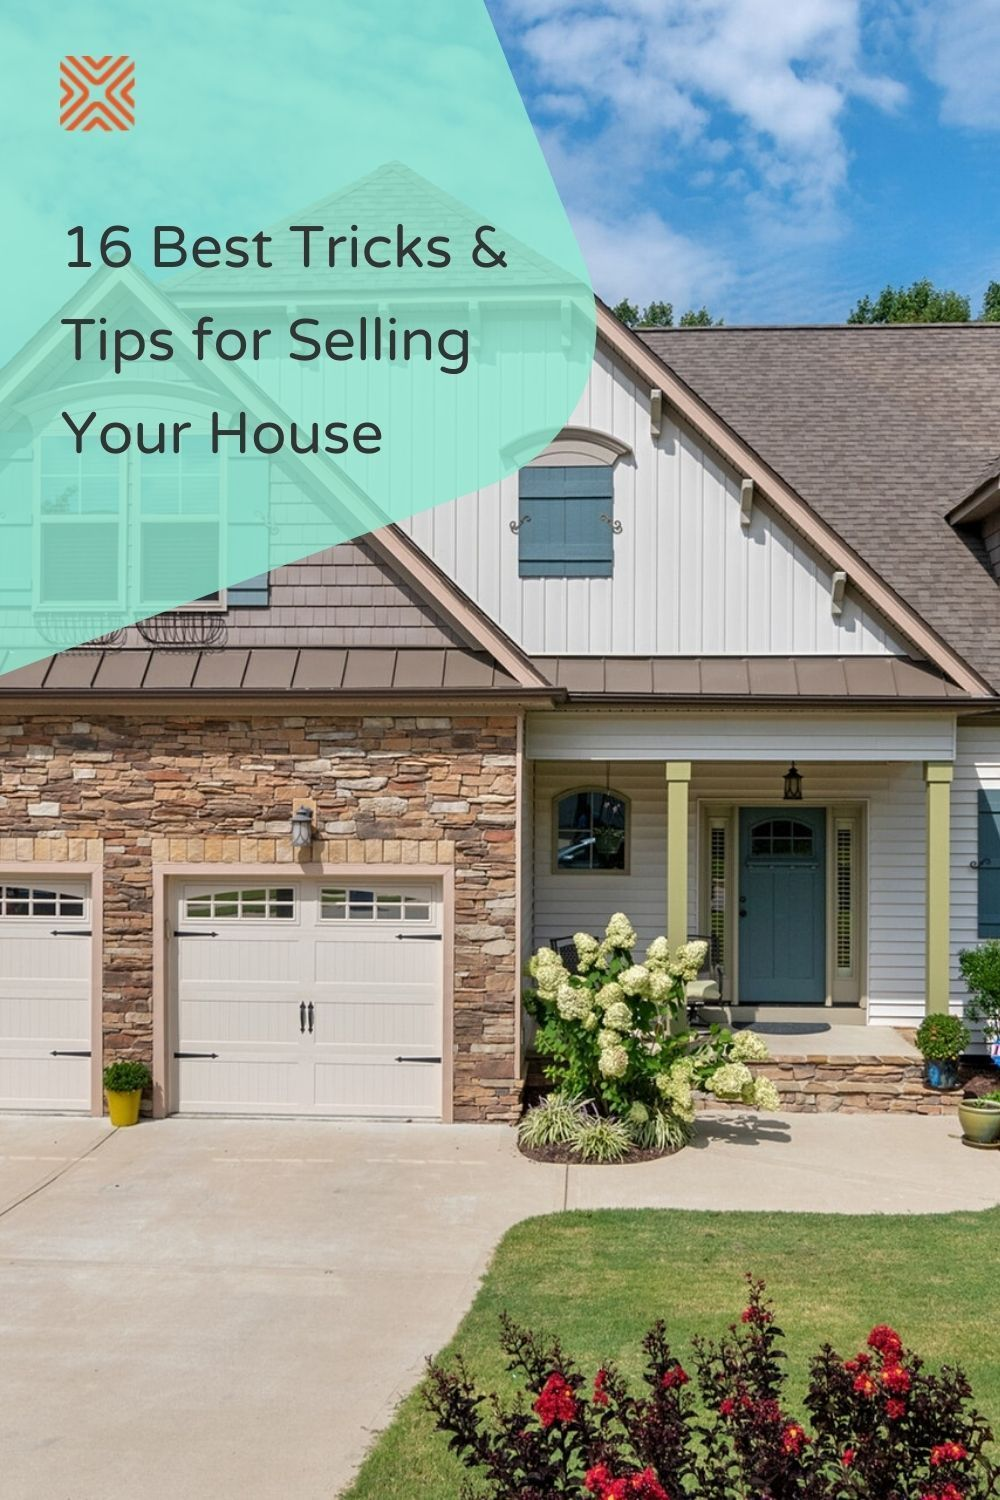 16 Real Estate Secrets And Tips For Selling Your House Selling Your House Real Estate Sell Your House Fast